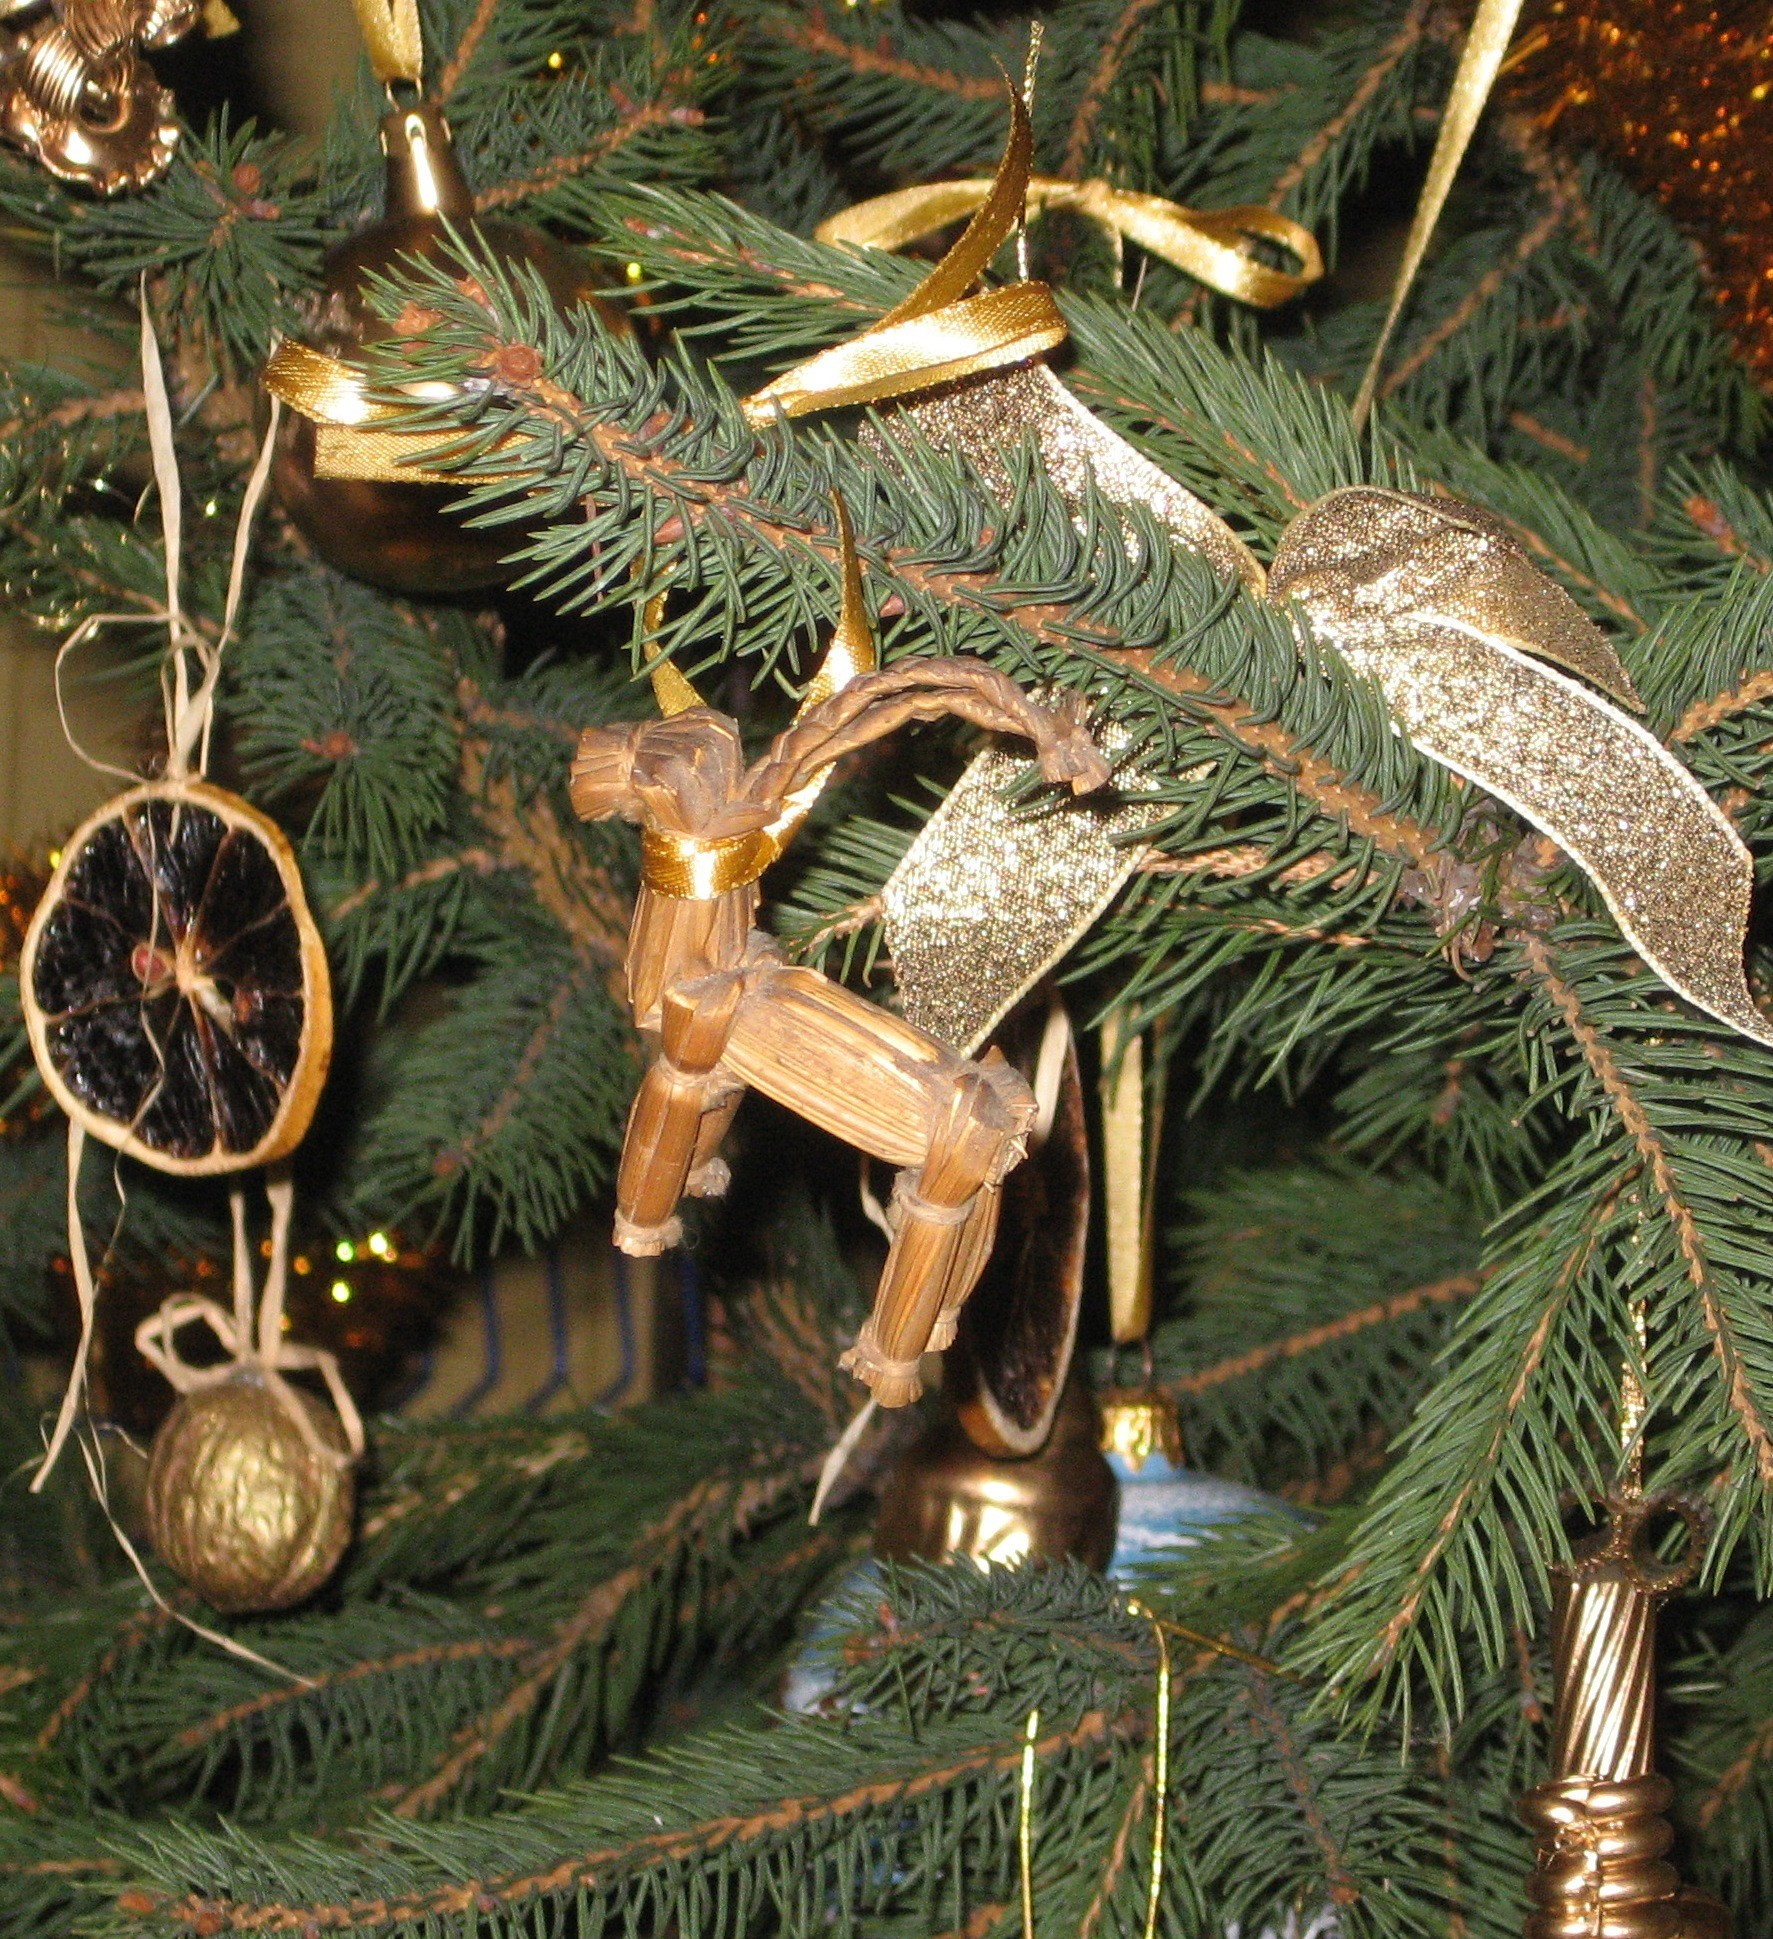 1773x1939 File:Yule Goat on the christmas tree.JPG